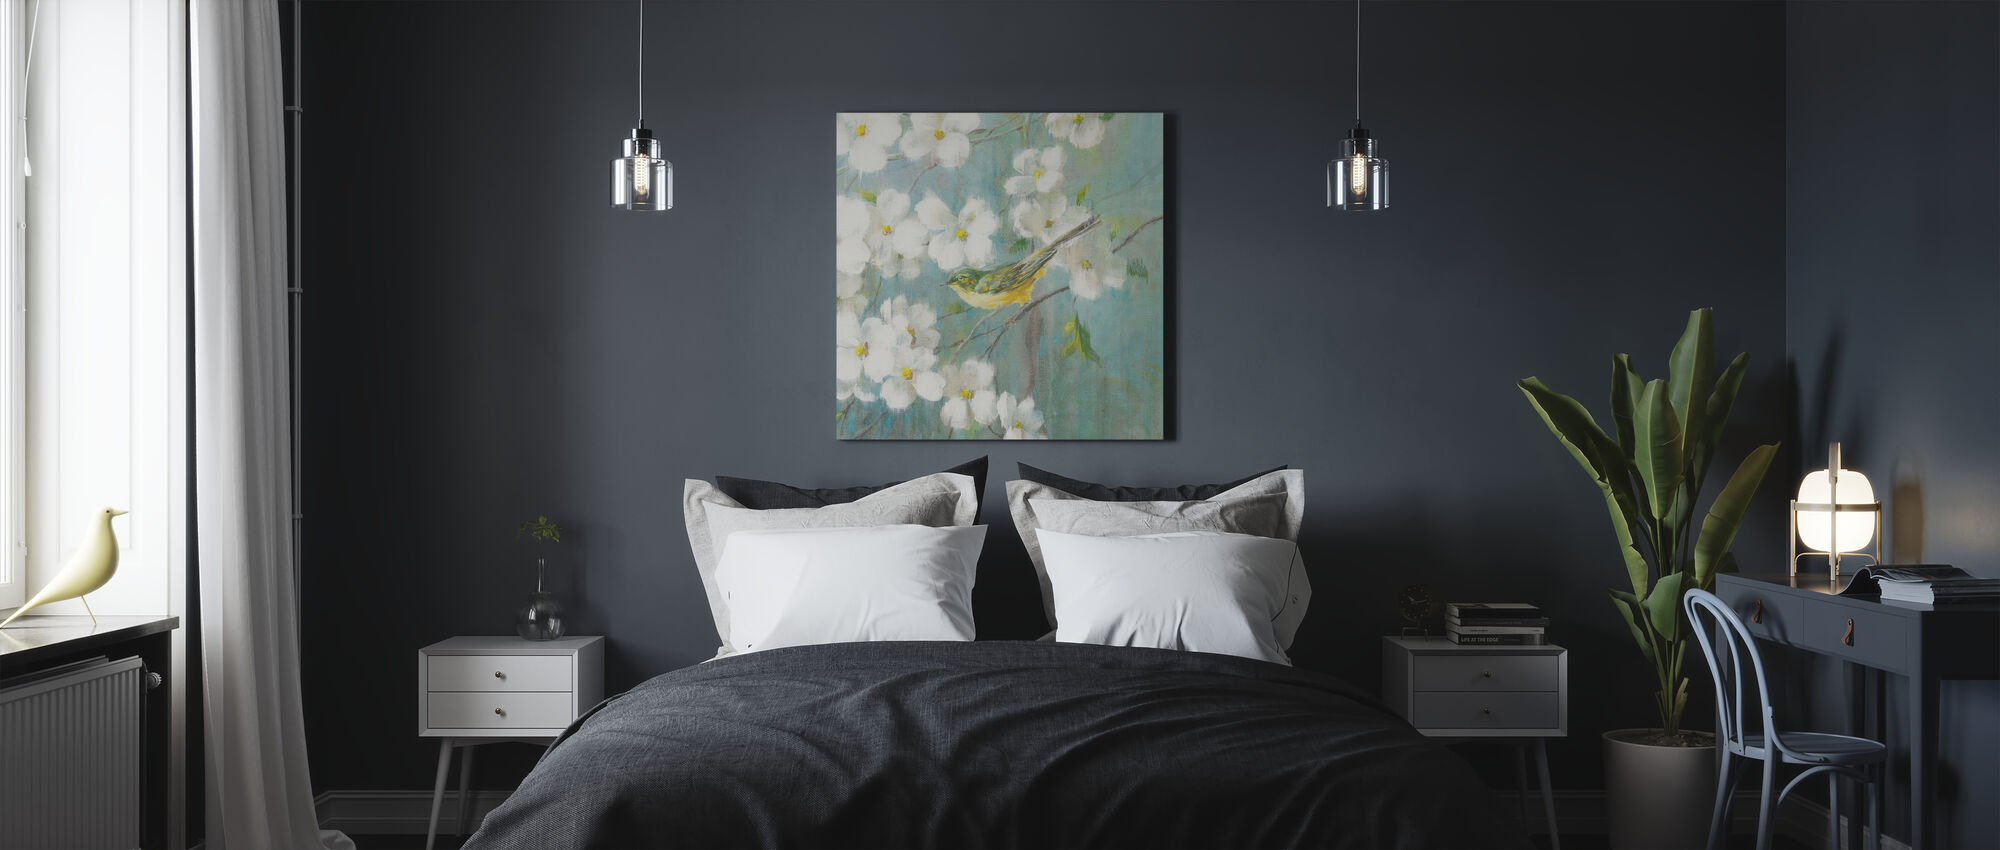 Spring Dream 4 - Canvas print - Bedroom